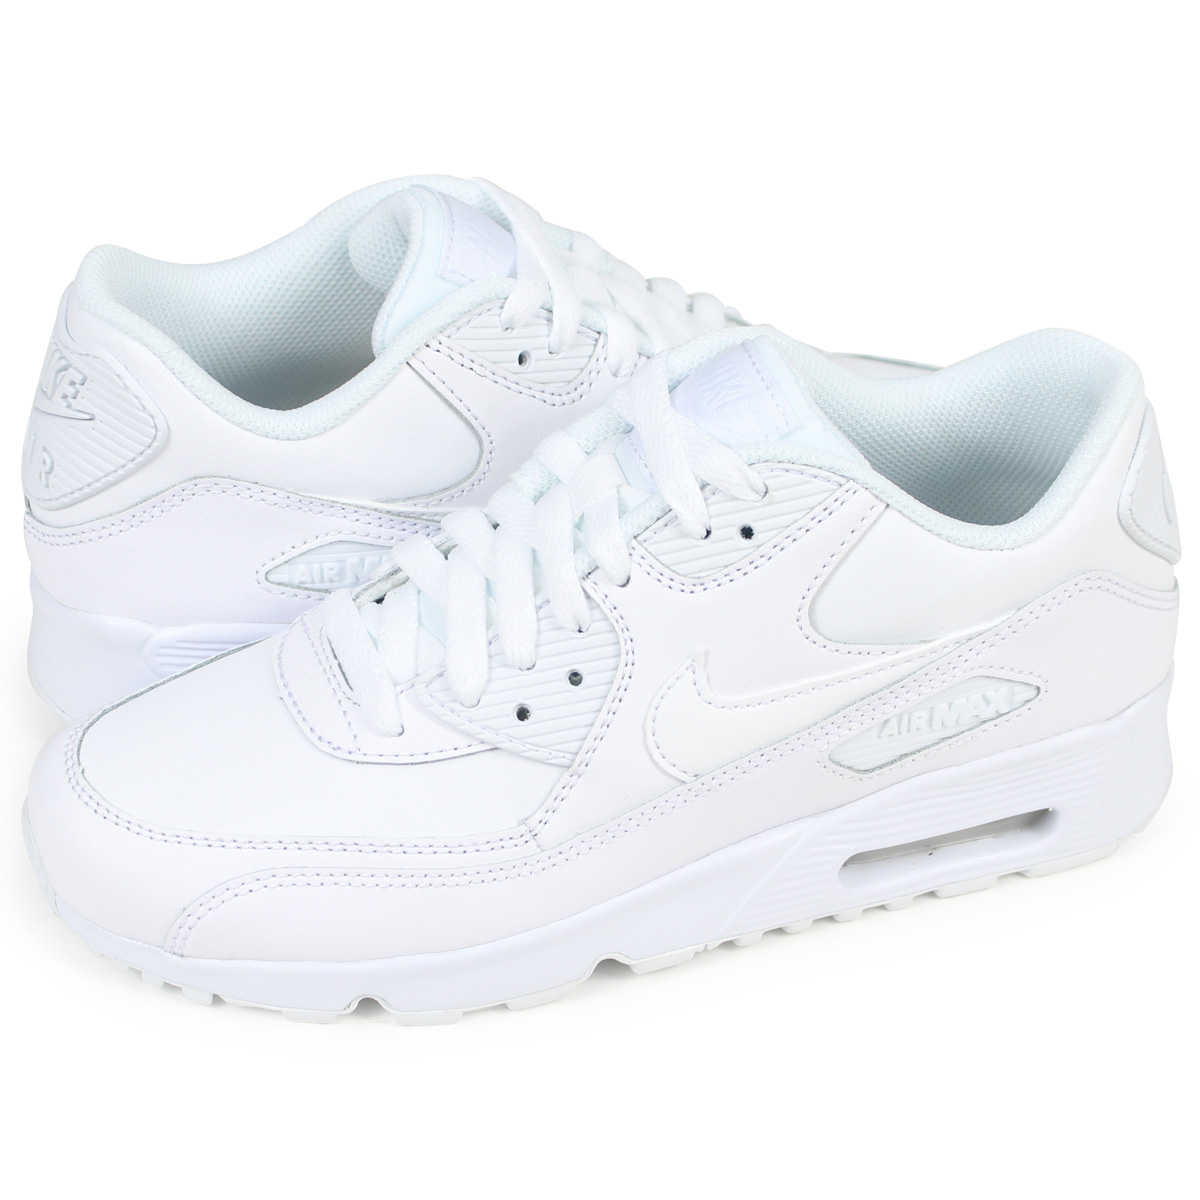 best service 519bc bbb0a Nike Air Max Womens NIKE sneakers AIR MAX 90 LEATHER GS Air Max 833412-100  shoes white 11  26 new in stock